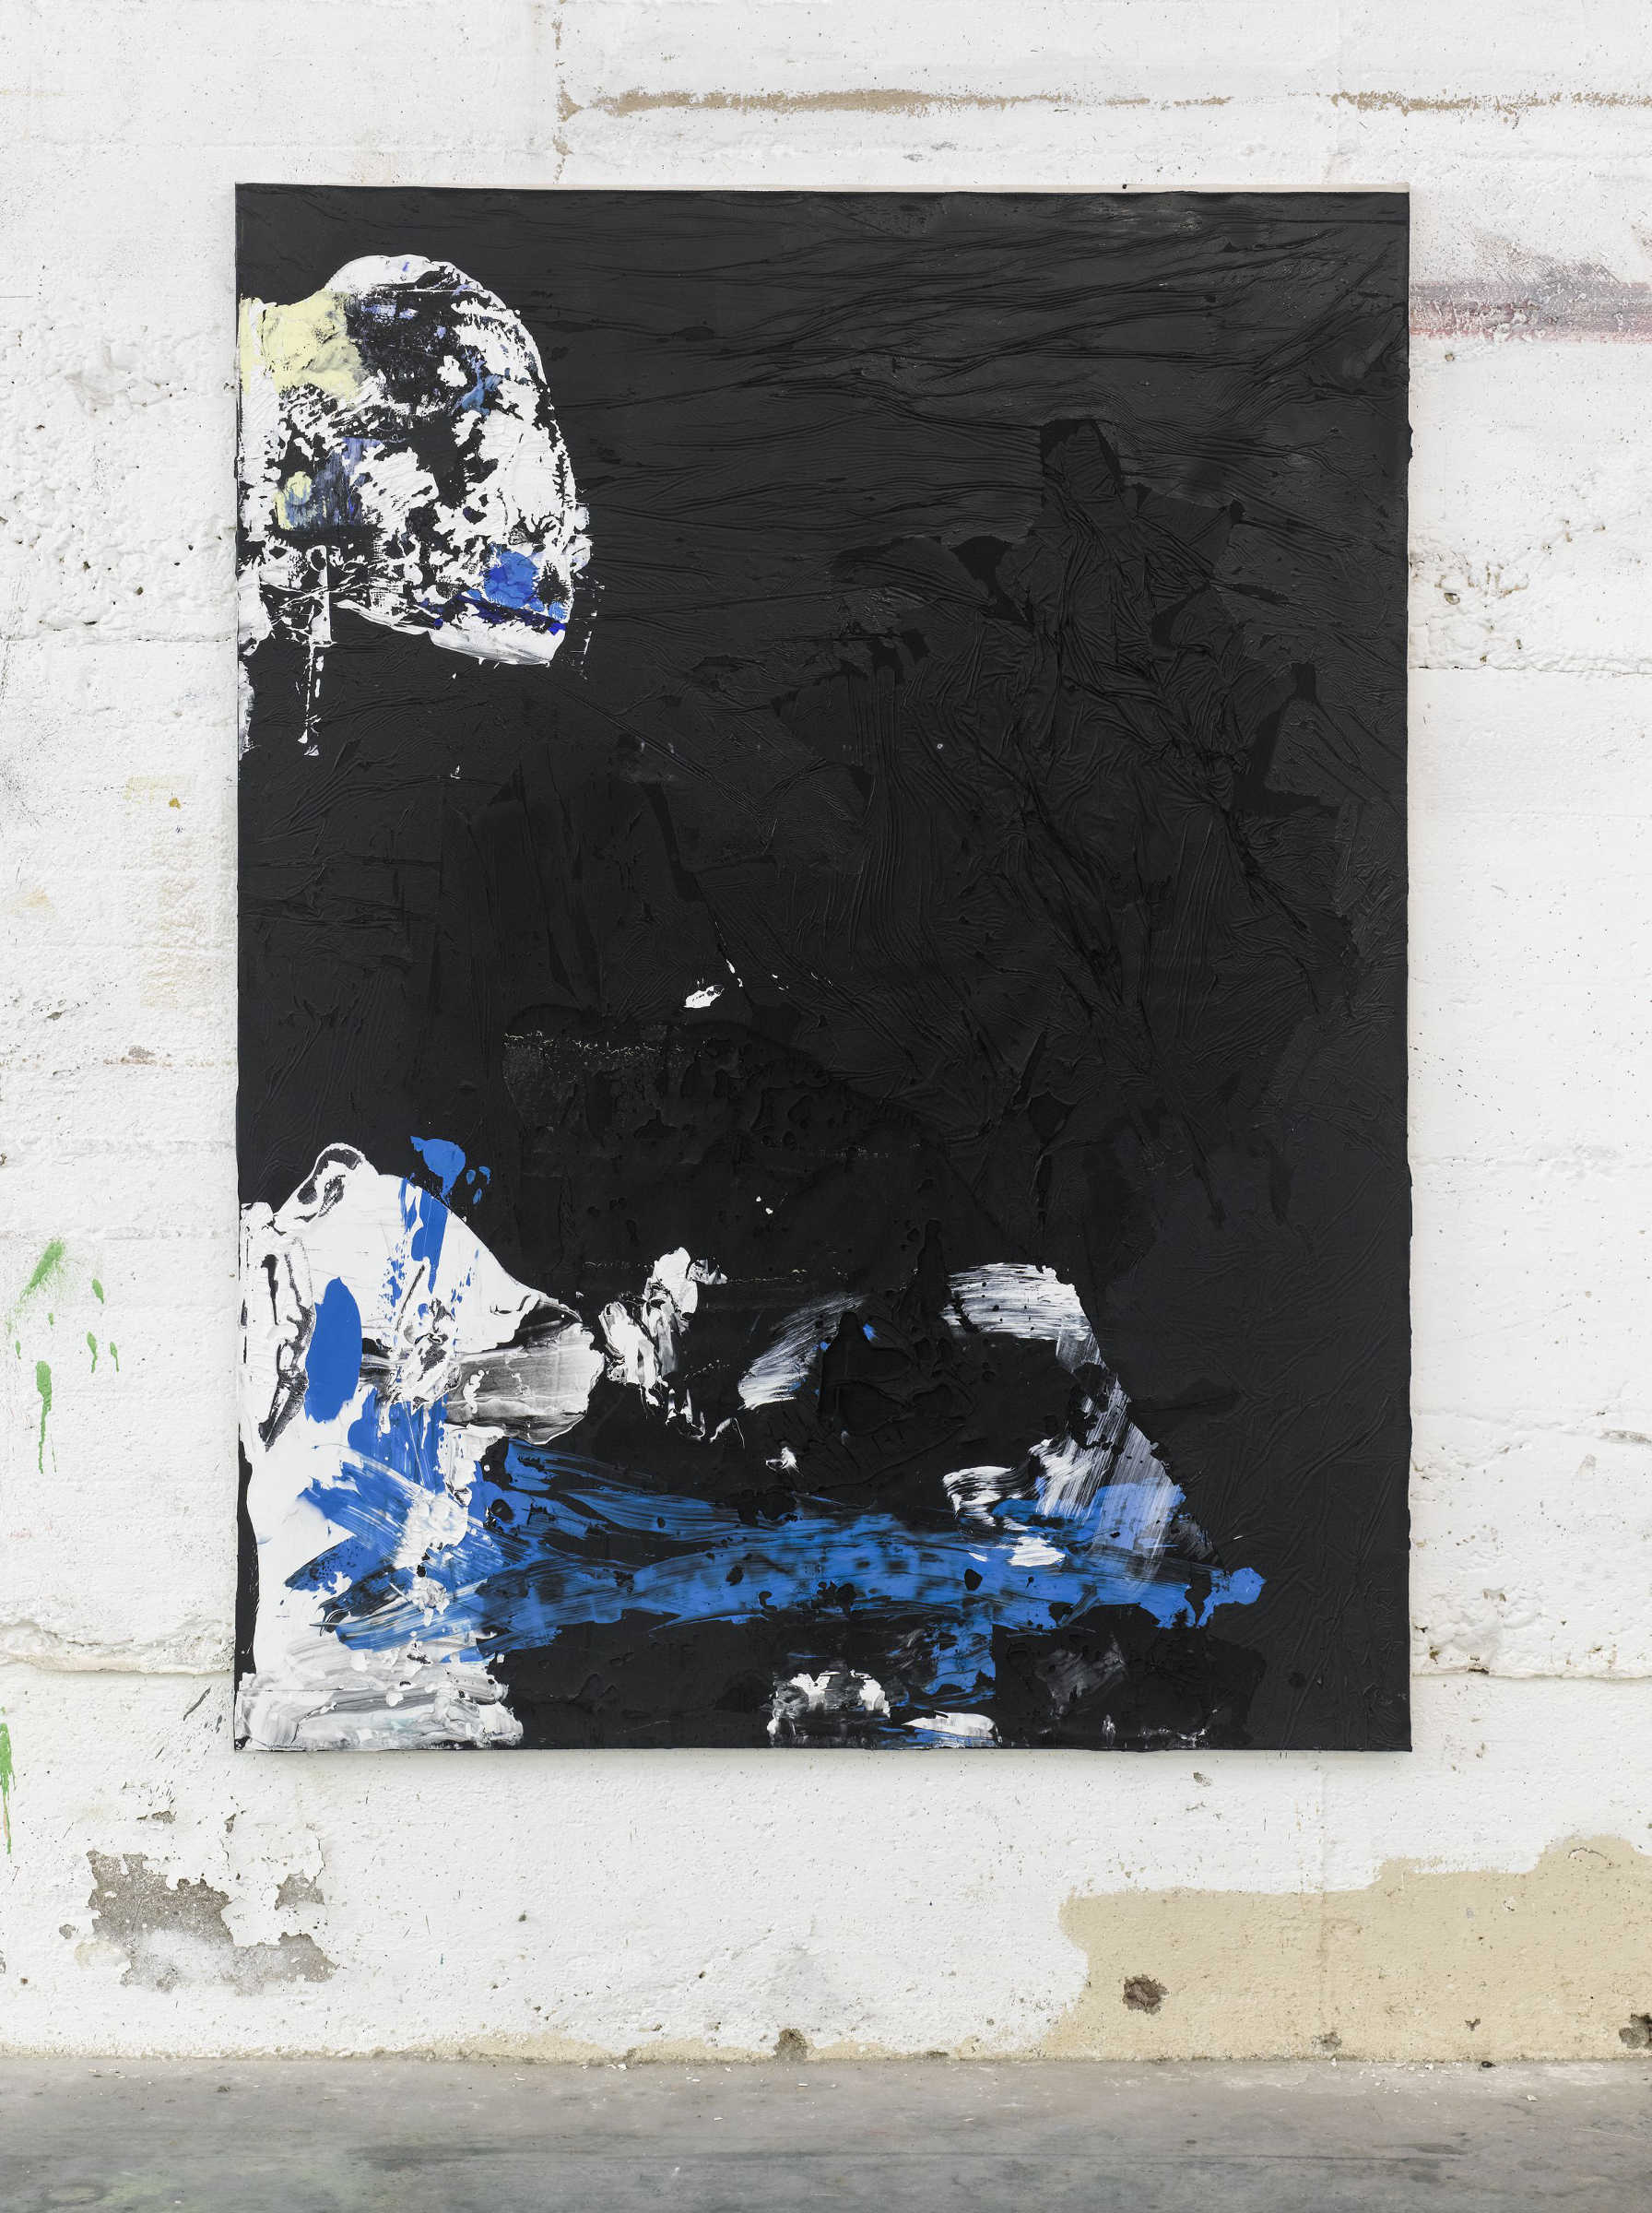 16_Tiziano Martini, 2015, untitled, acrylic paint and acrylic sediments  on cotton, cm 160x120, photo Dejna Saric